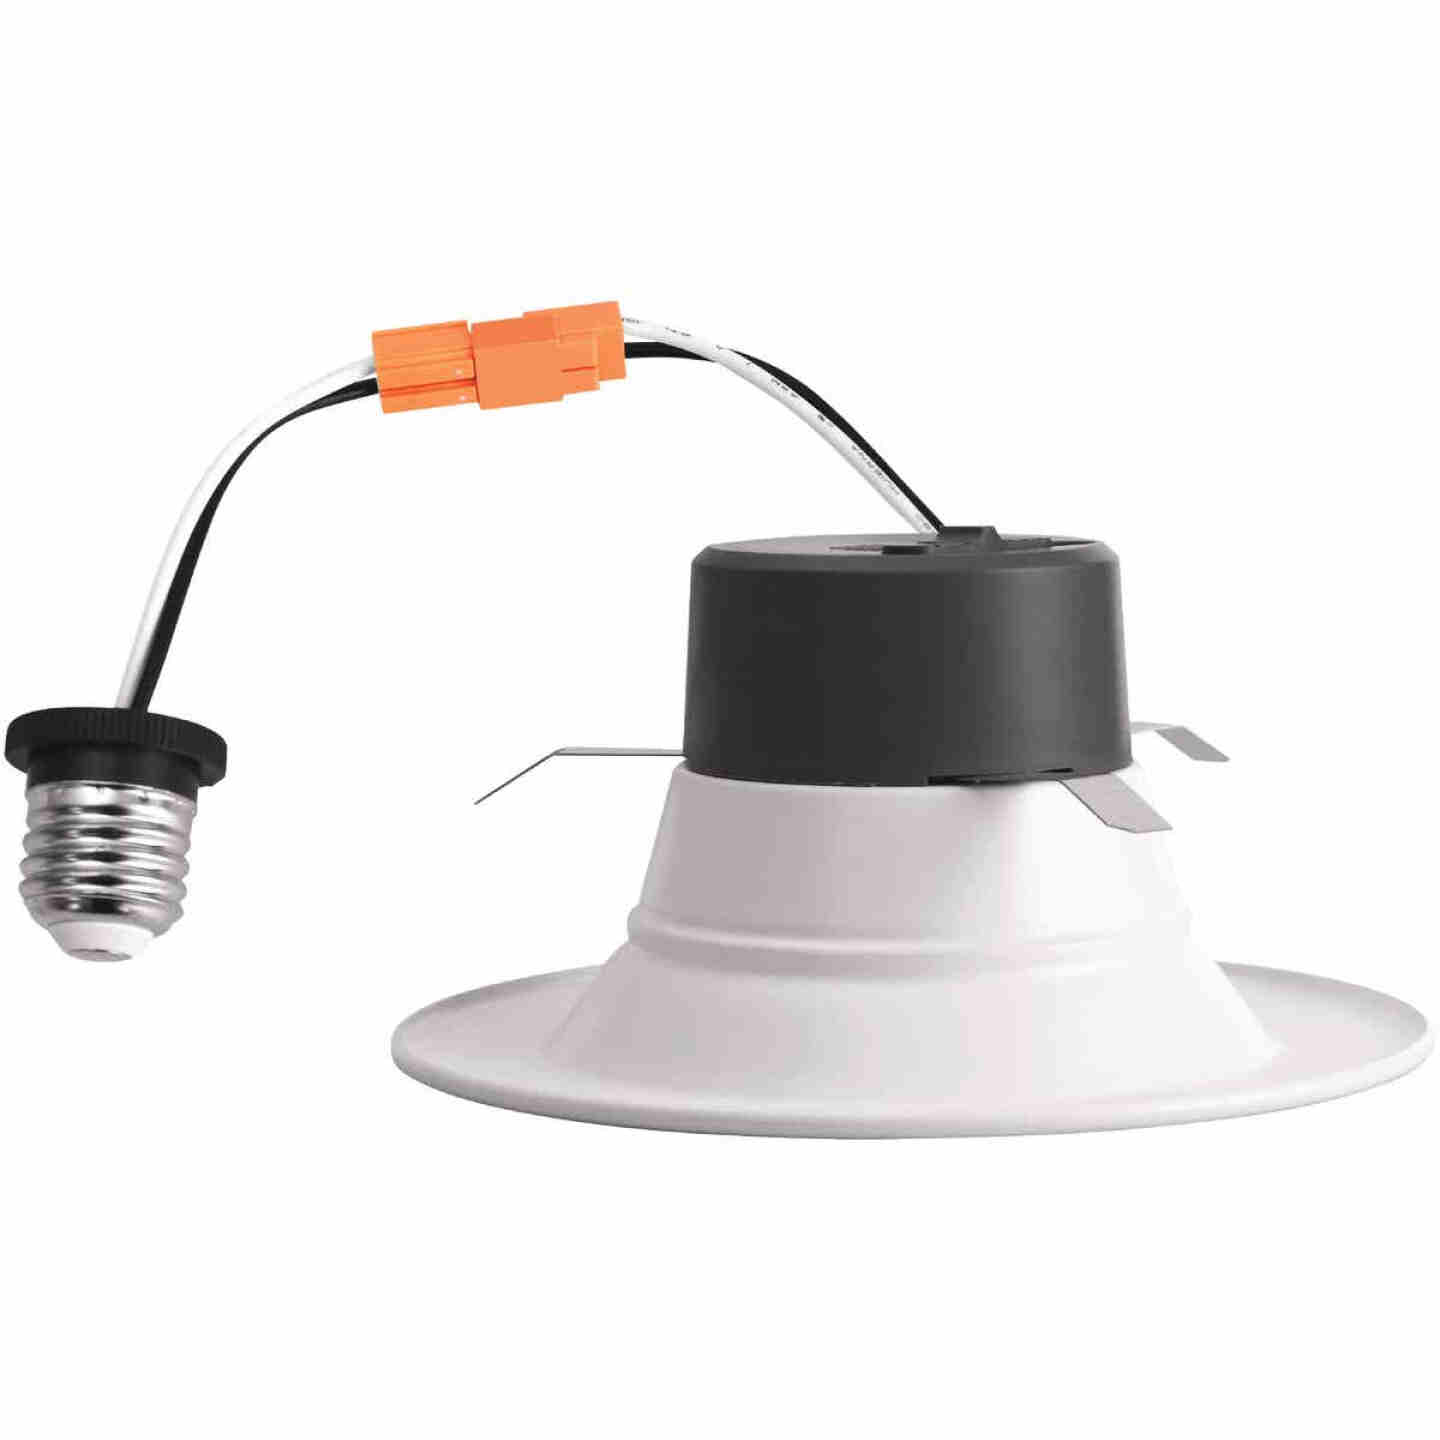 4 In. Retrofit IC Rated White LED CCT Tunable Down Light with Baffle Trim Image 4